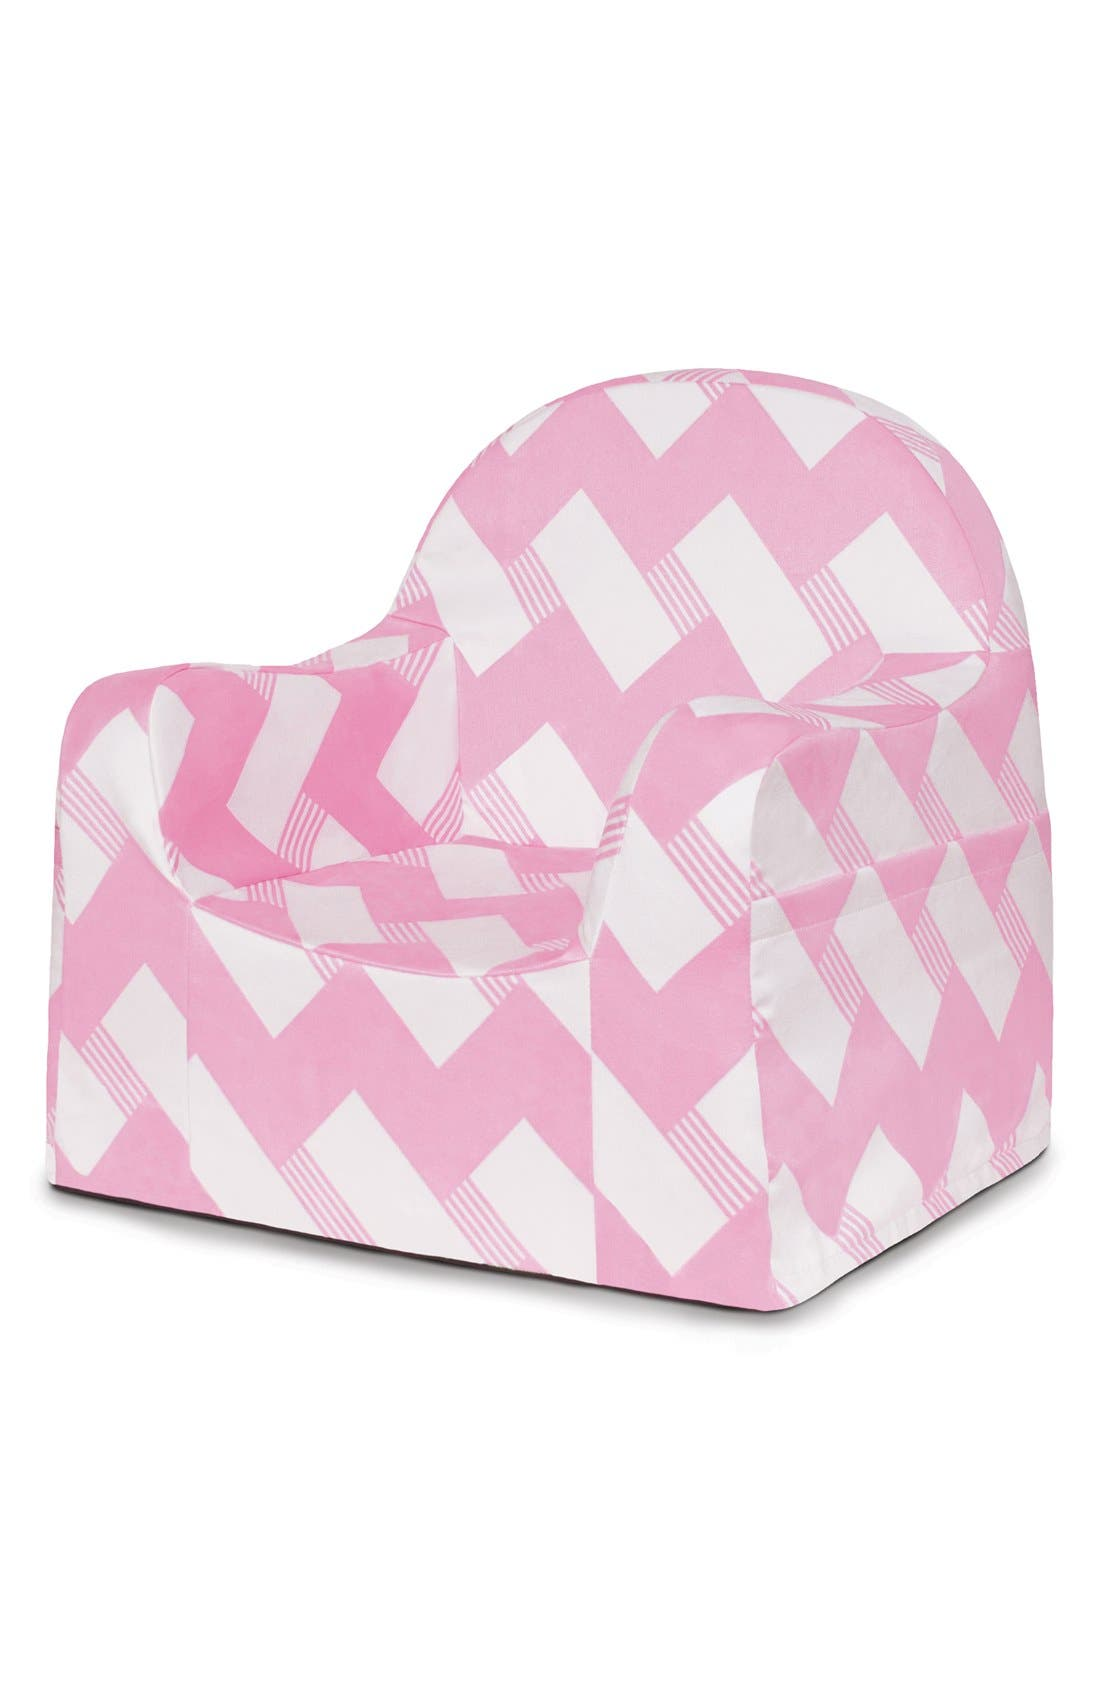 'Personalized Little Reader' Chair,                             Alternate thumbnail 9, color,